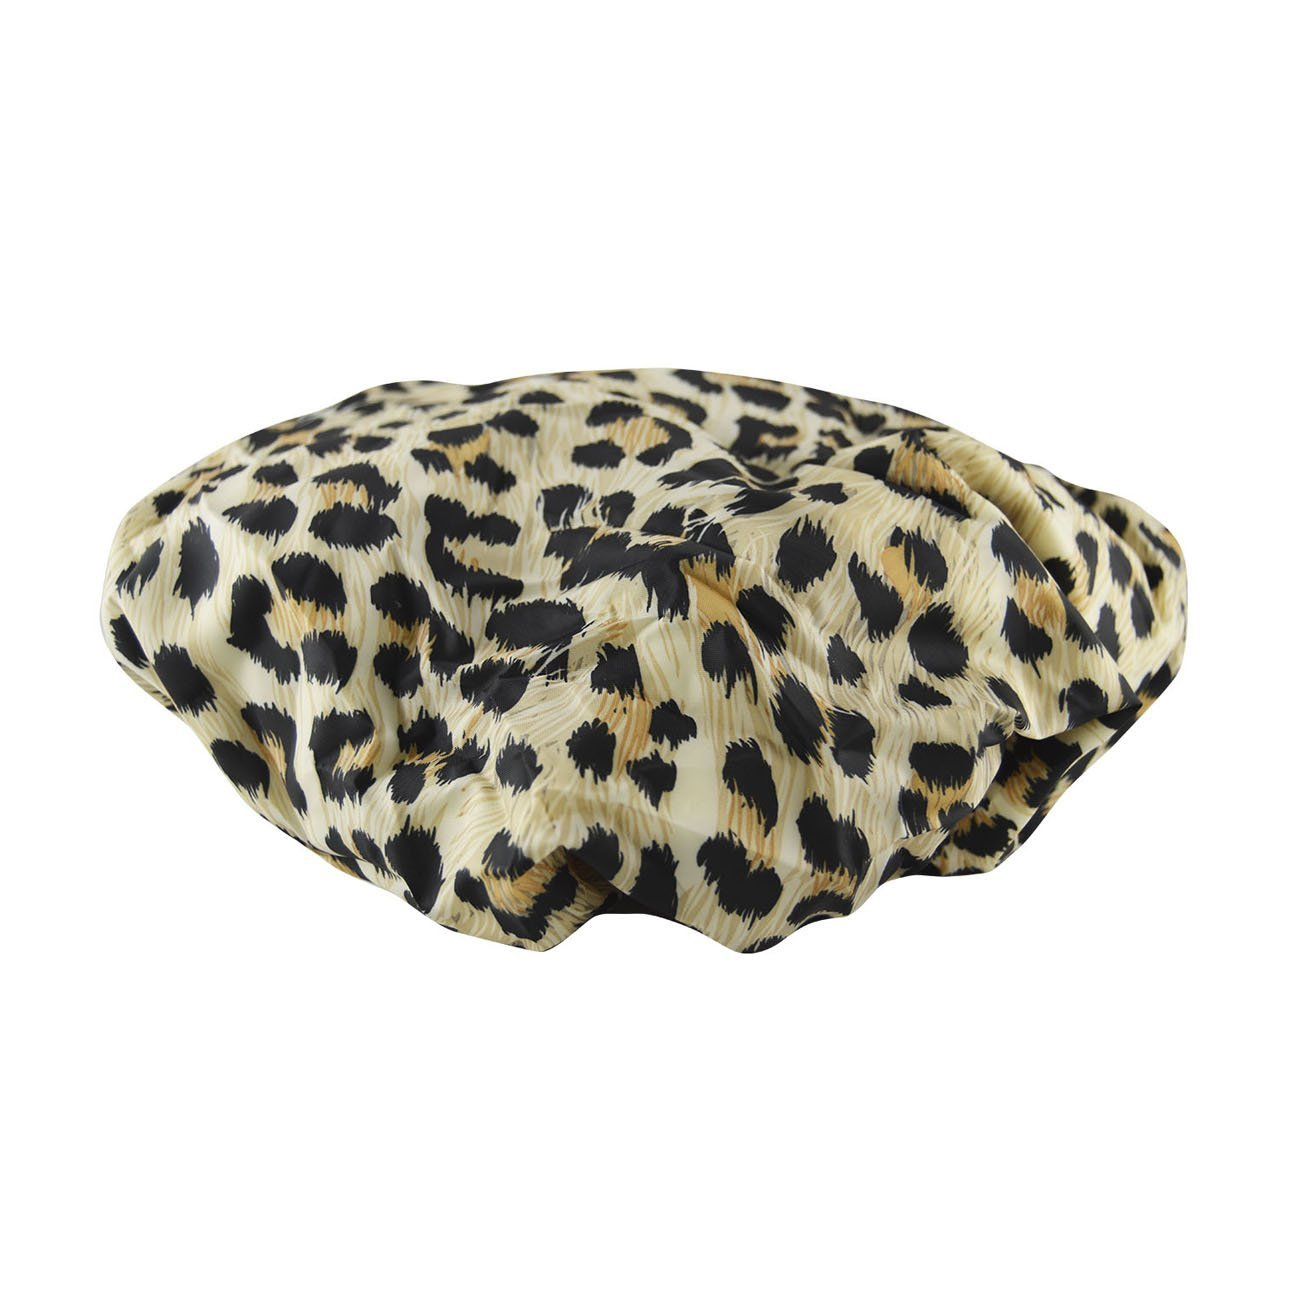 Betty Dain Socialite Collection Terry Lined Shower Cap, Waterproof Nylon Exterior, Reversible Design for Shower or Sleeping Cap, Oversized for All Hair Lengths, Elasticized Hem, Safari Spots : Beauty